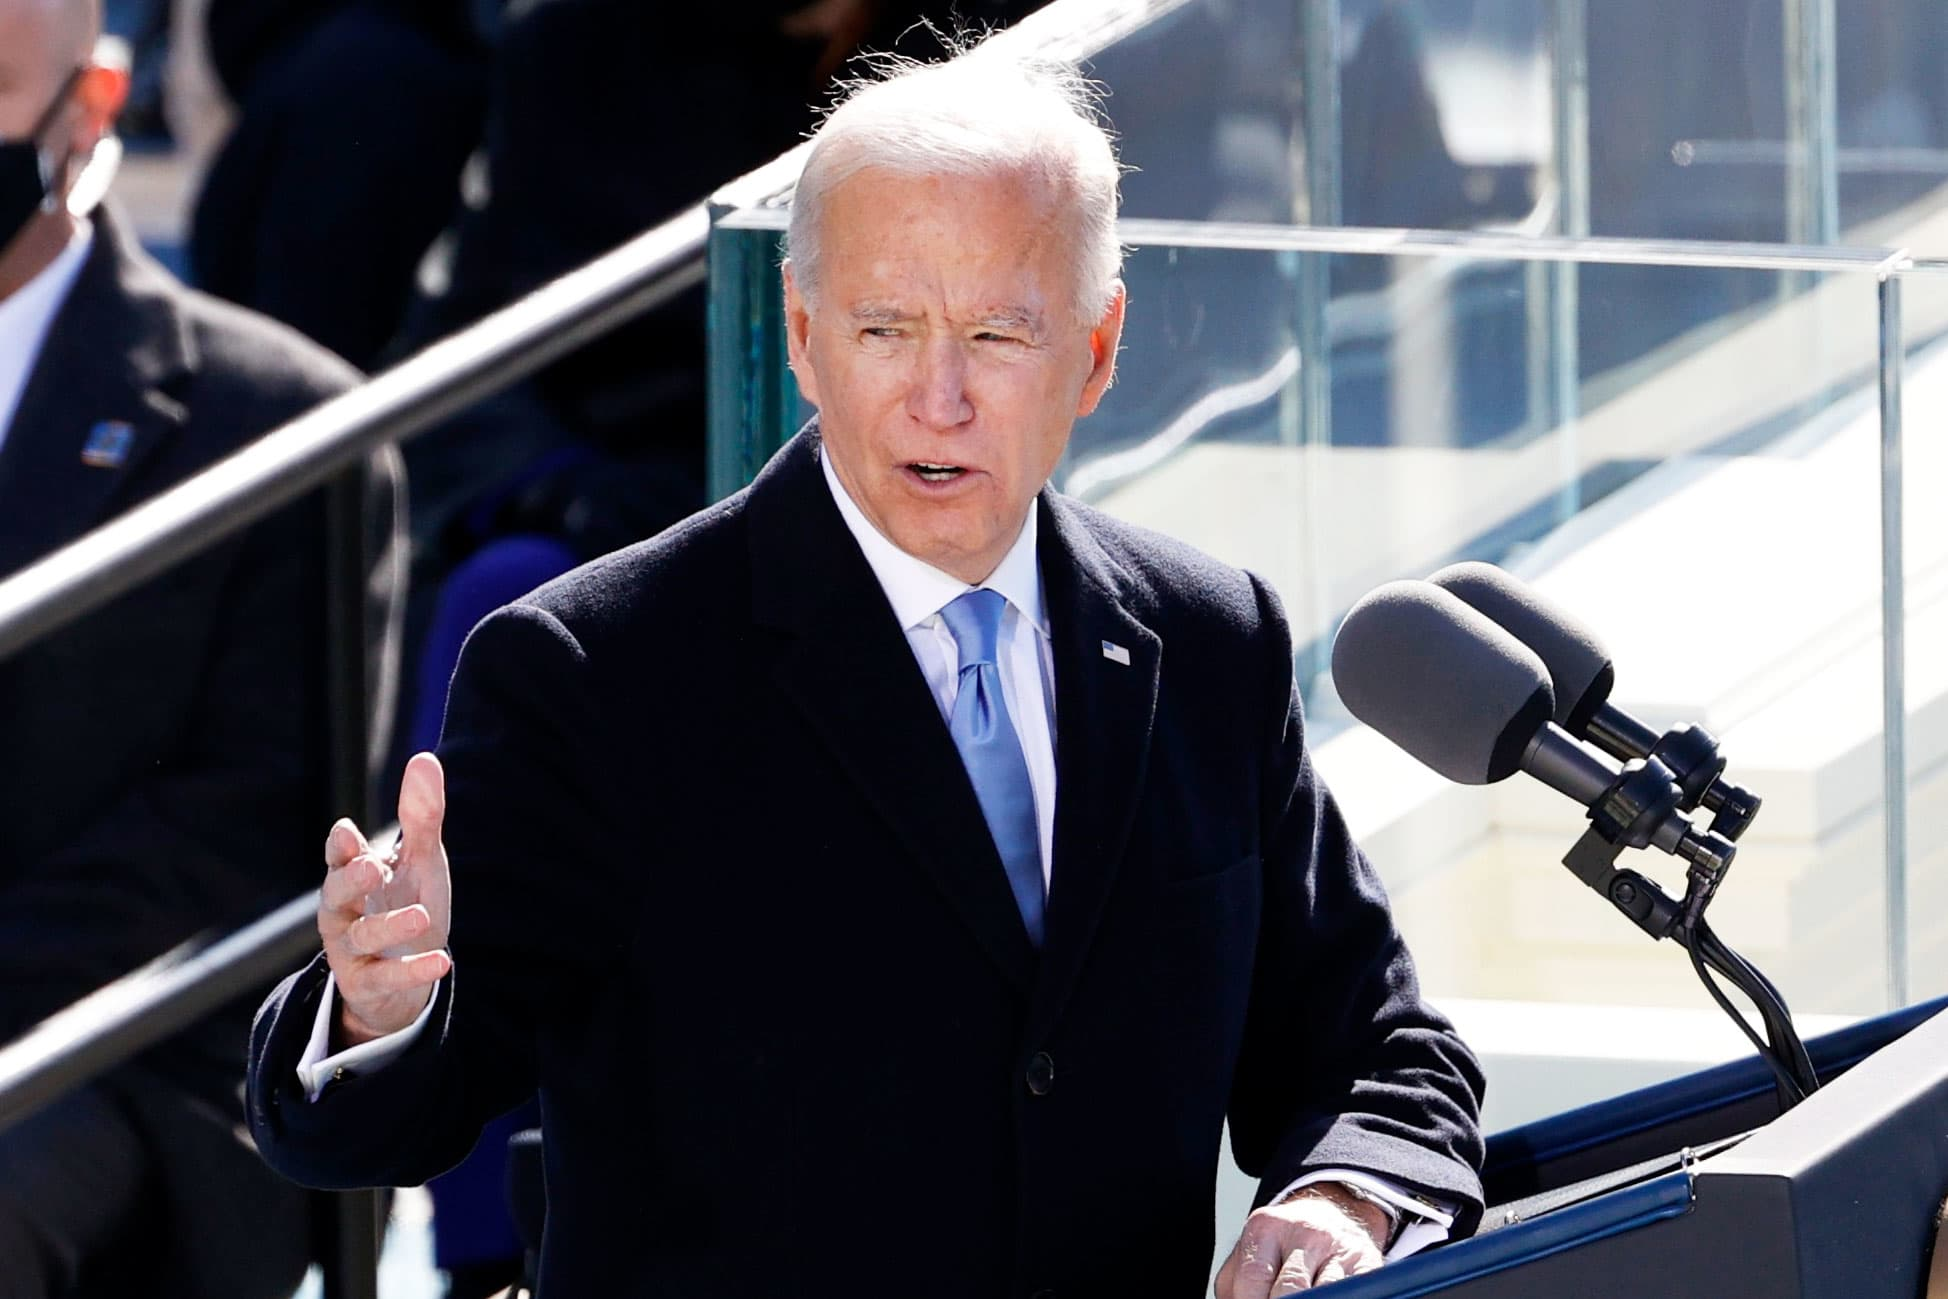 Biden extends the national ban on evictions through March 2021 thumbnail